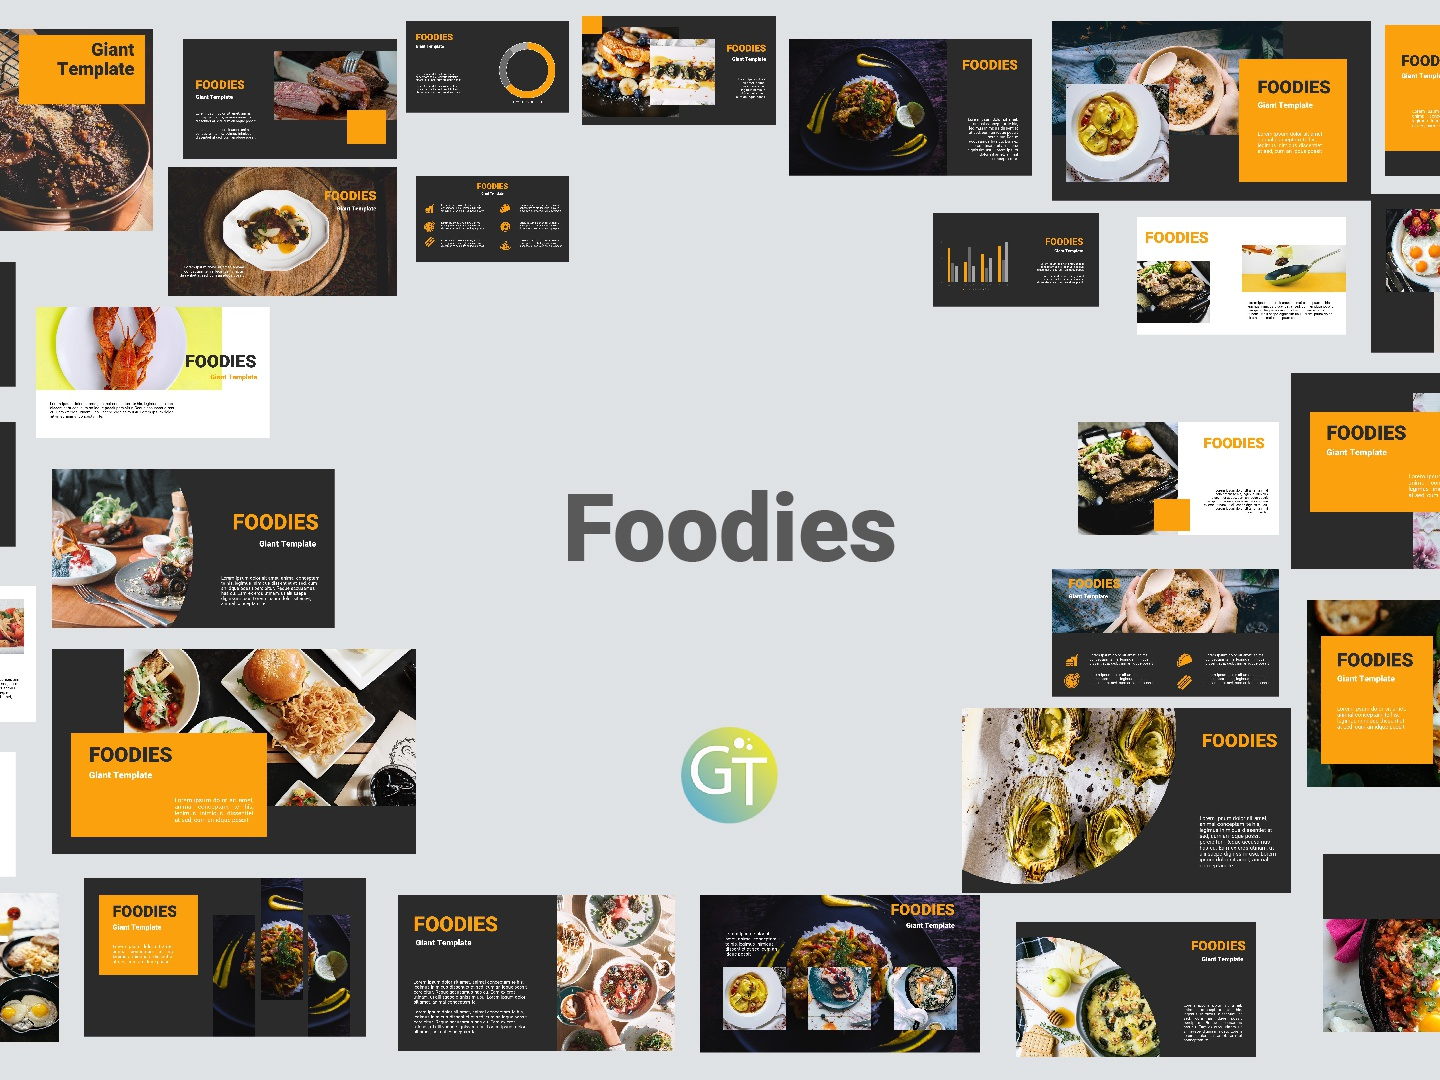 Free Download Food Presentation Powerporpoint Template powerpoint design ppt template powerpoint presentation powerpoint template